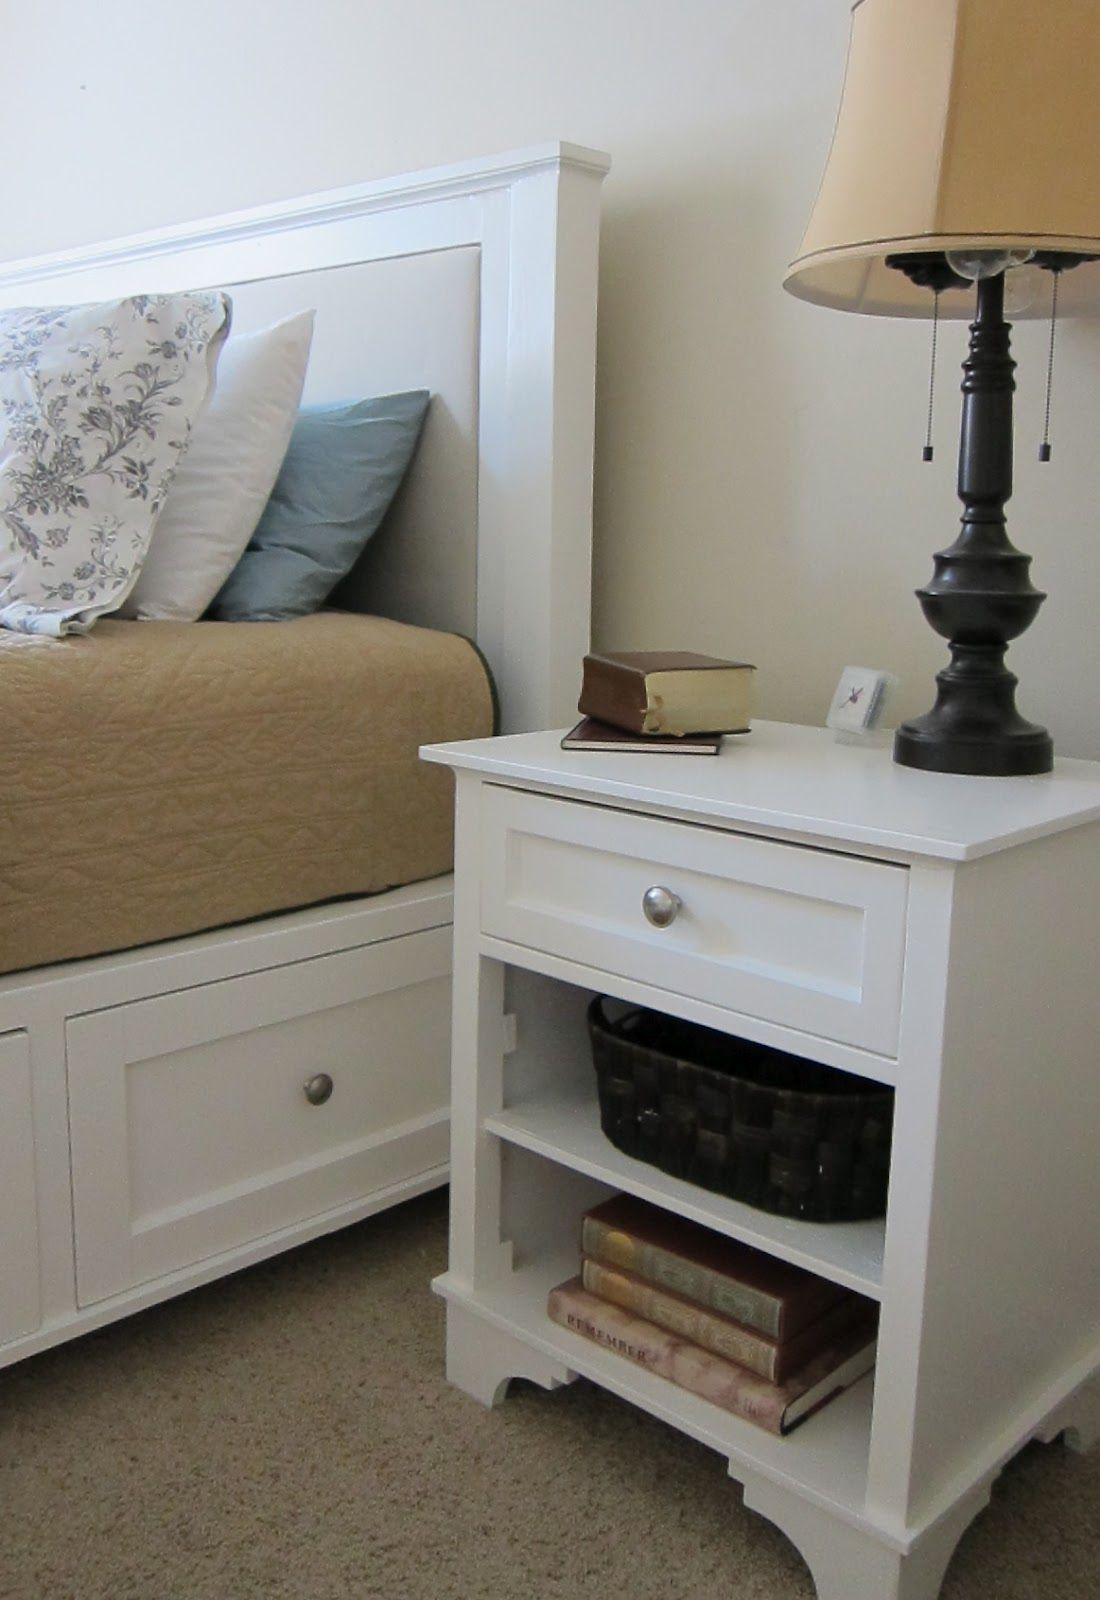 Instructions On How To Build This Bed And Night Stand From